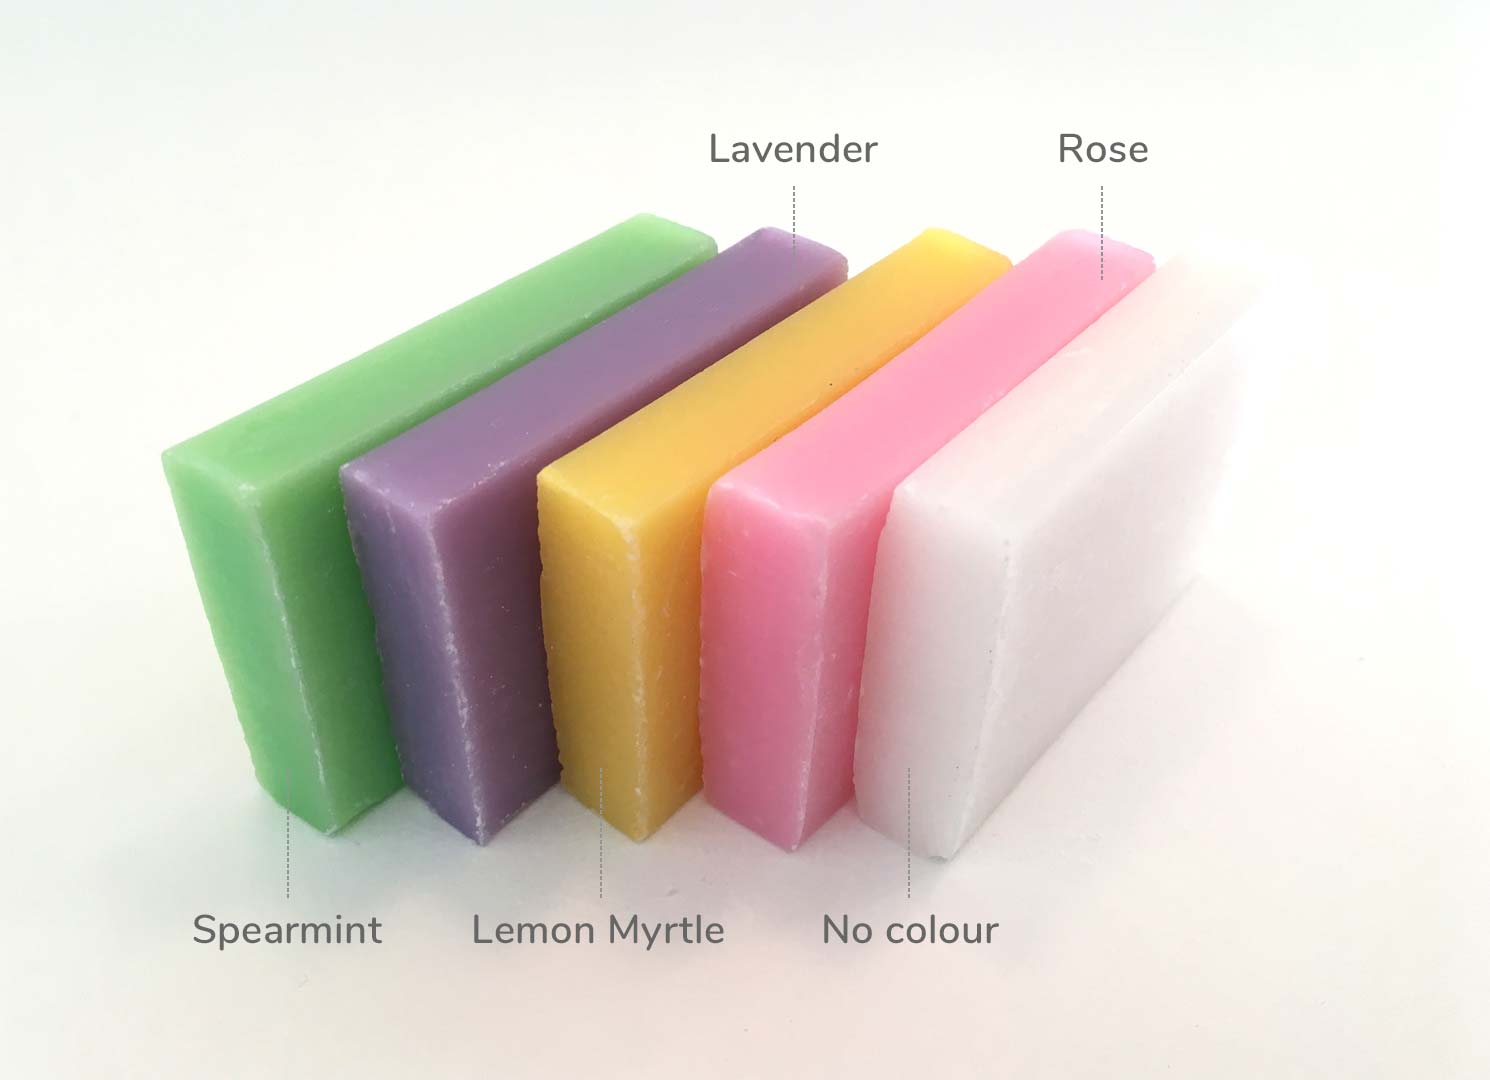 18g-hotel-soaps_2